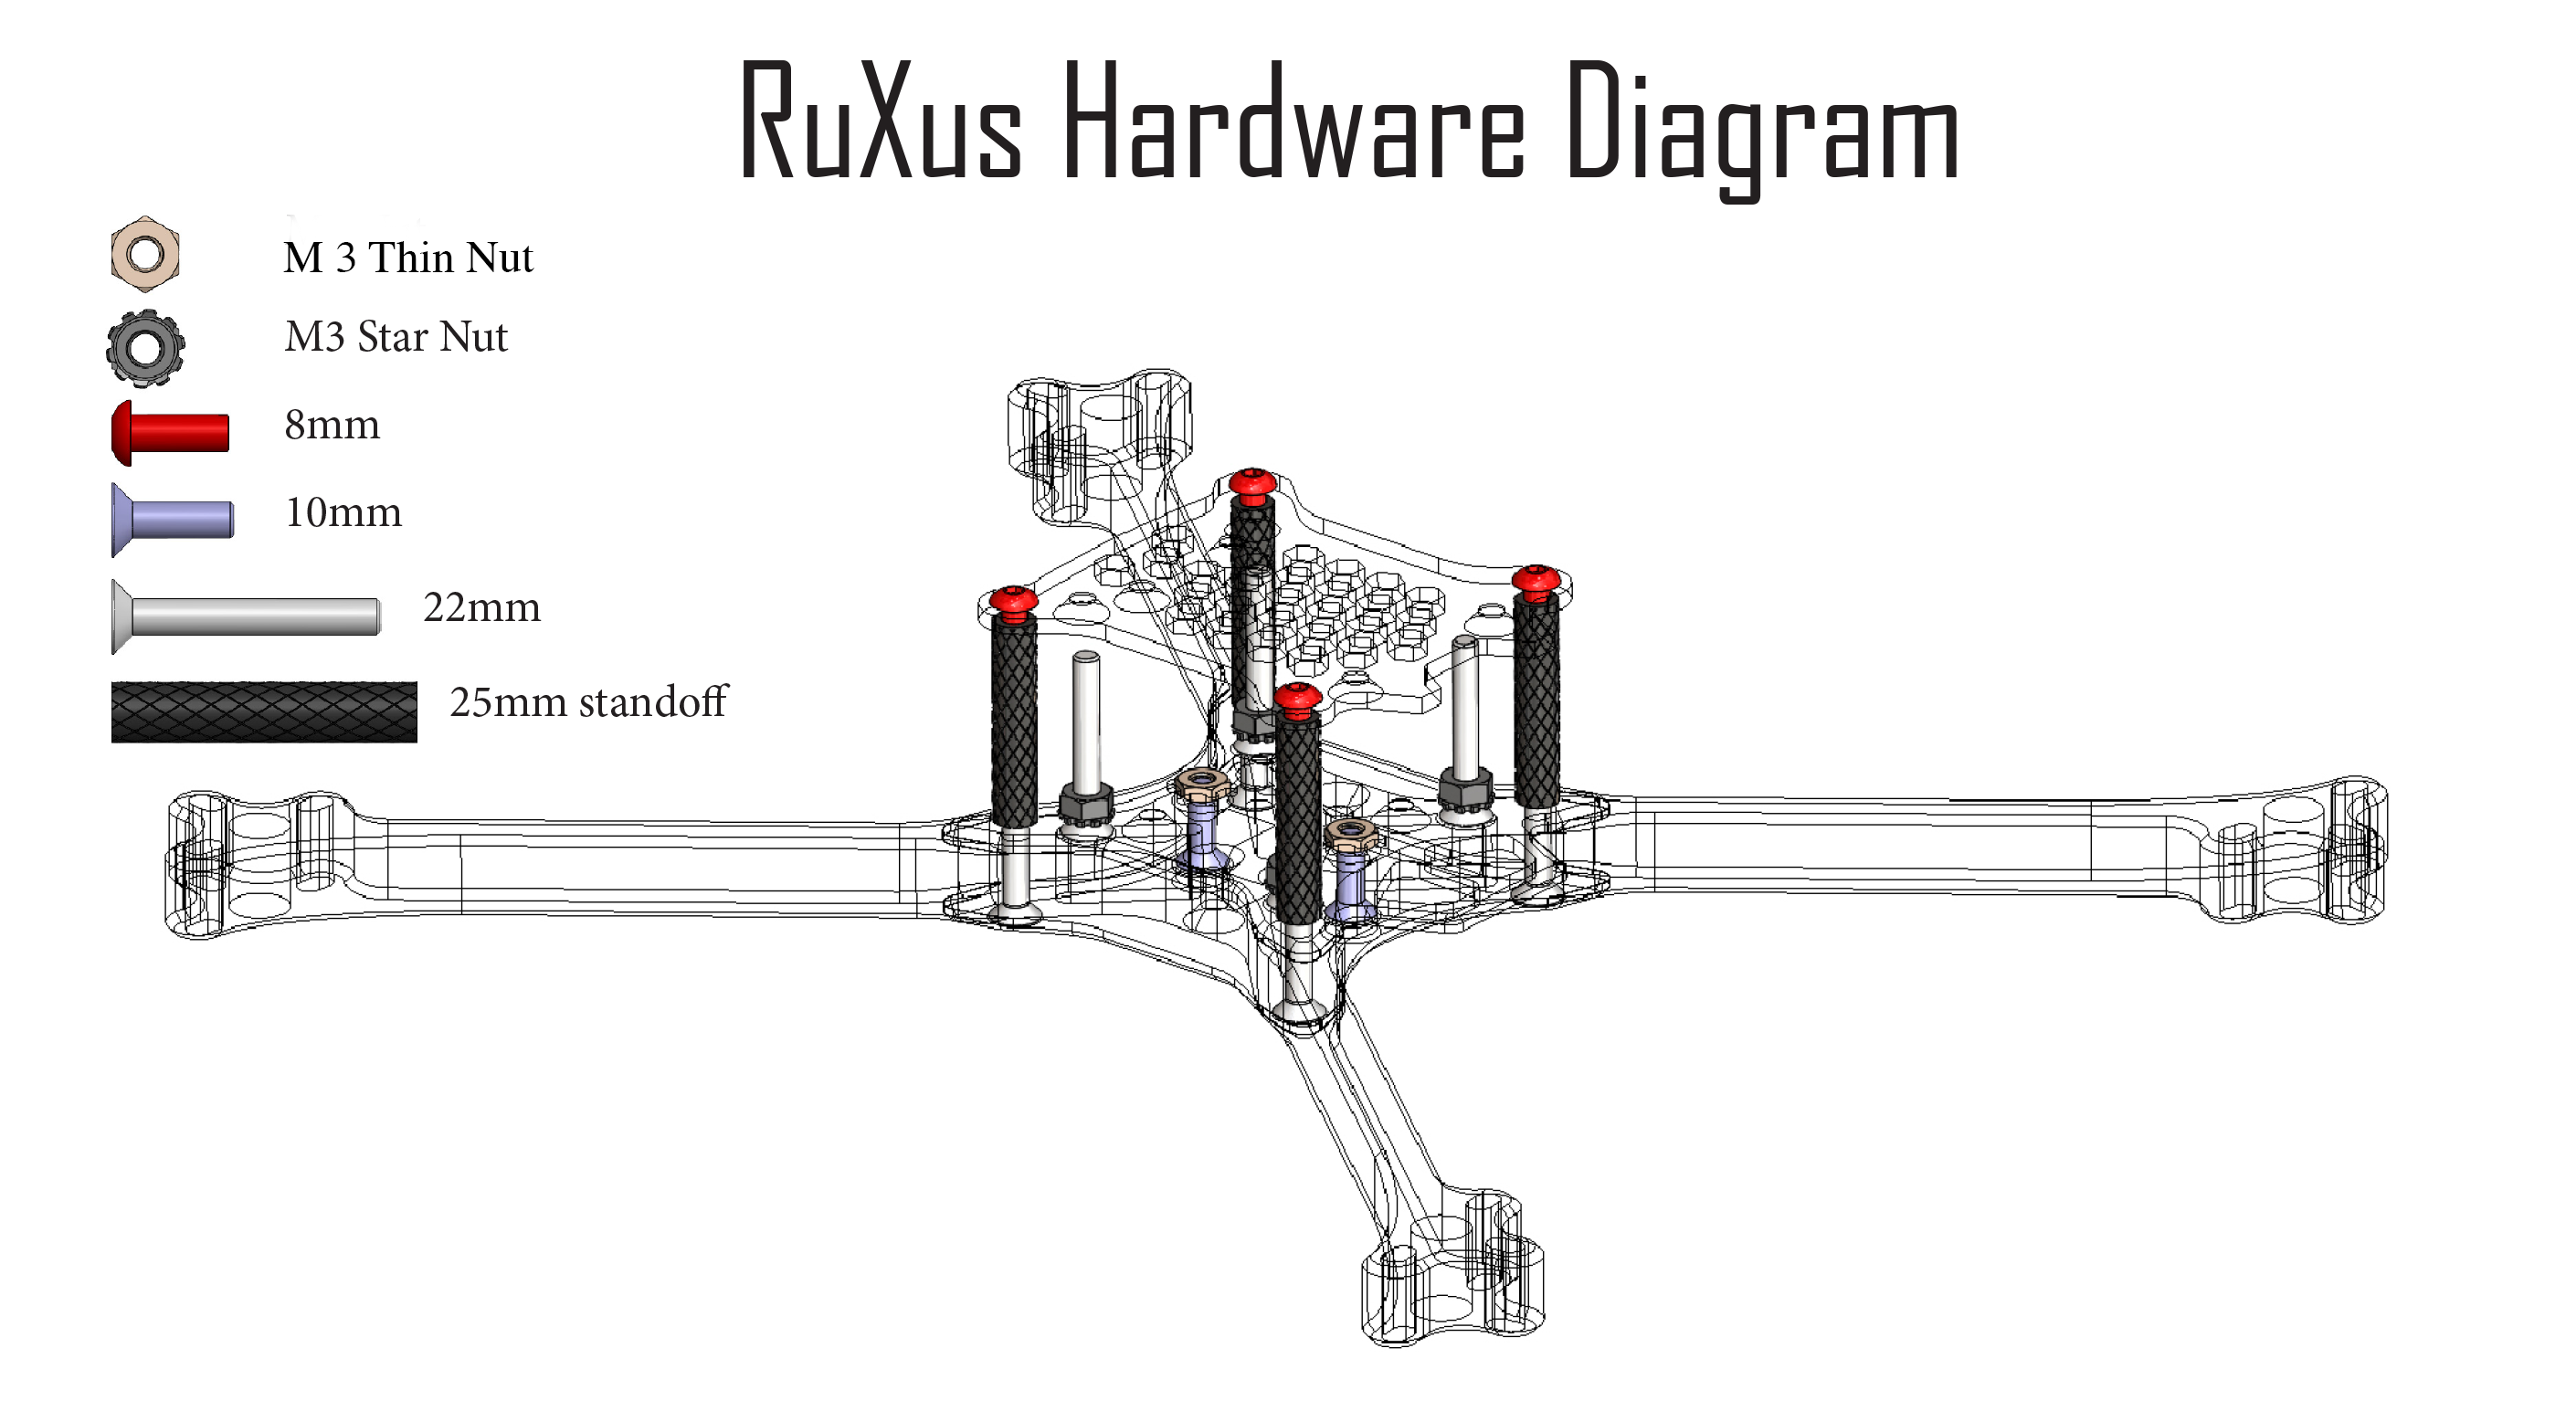 ruxus-hardware-diagram.png